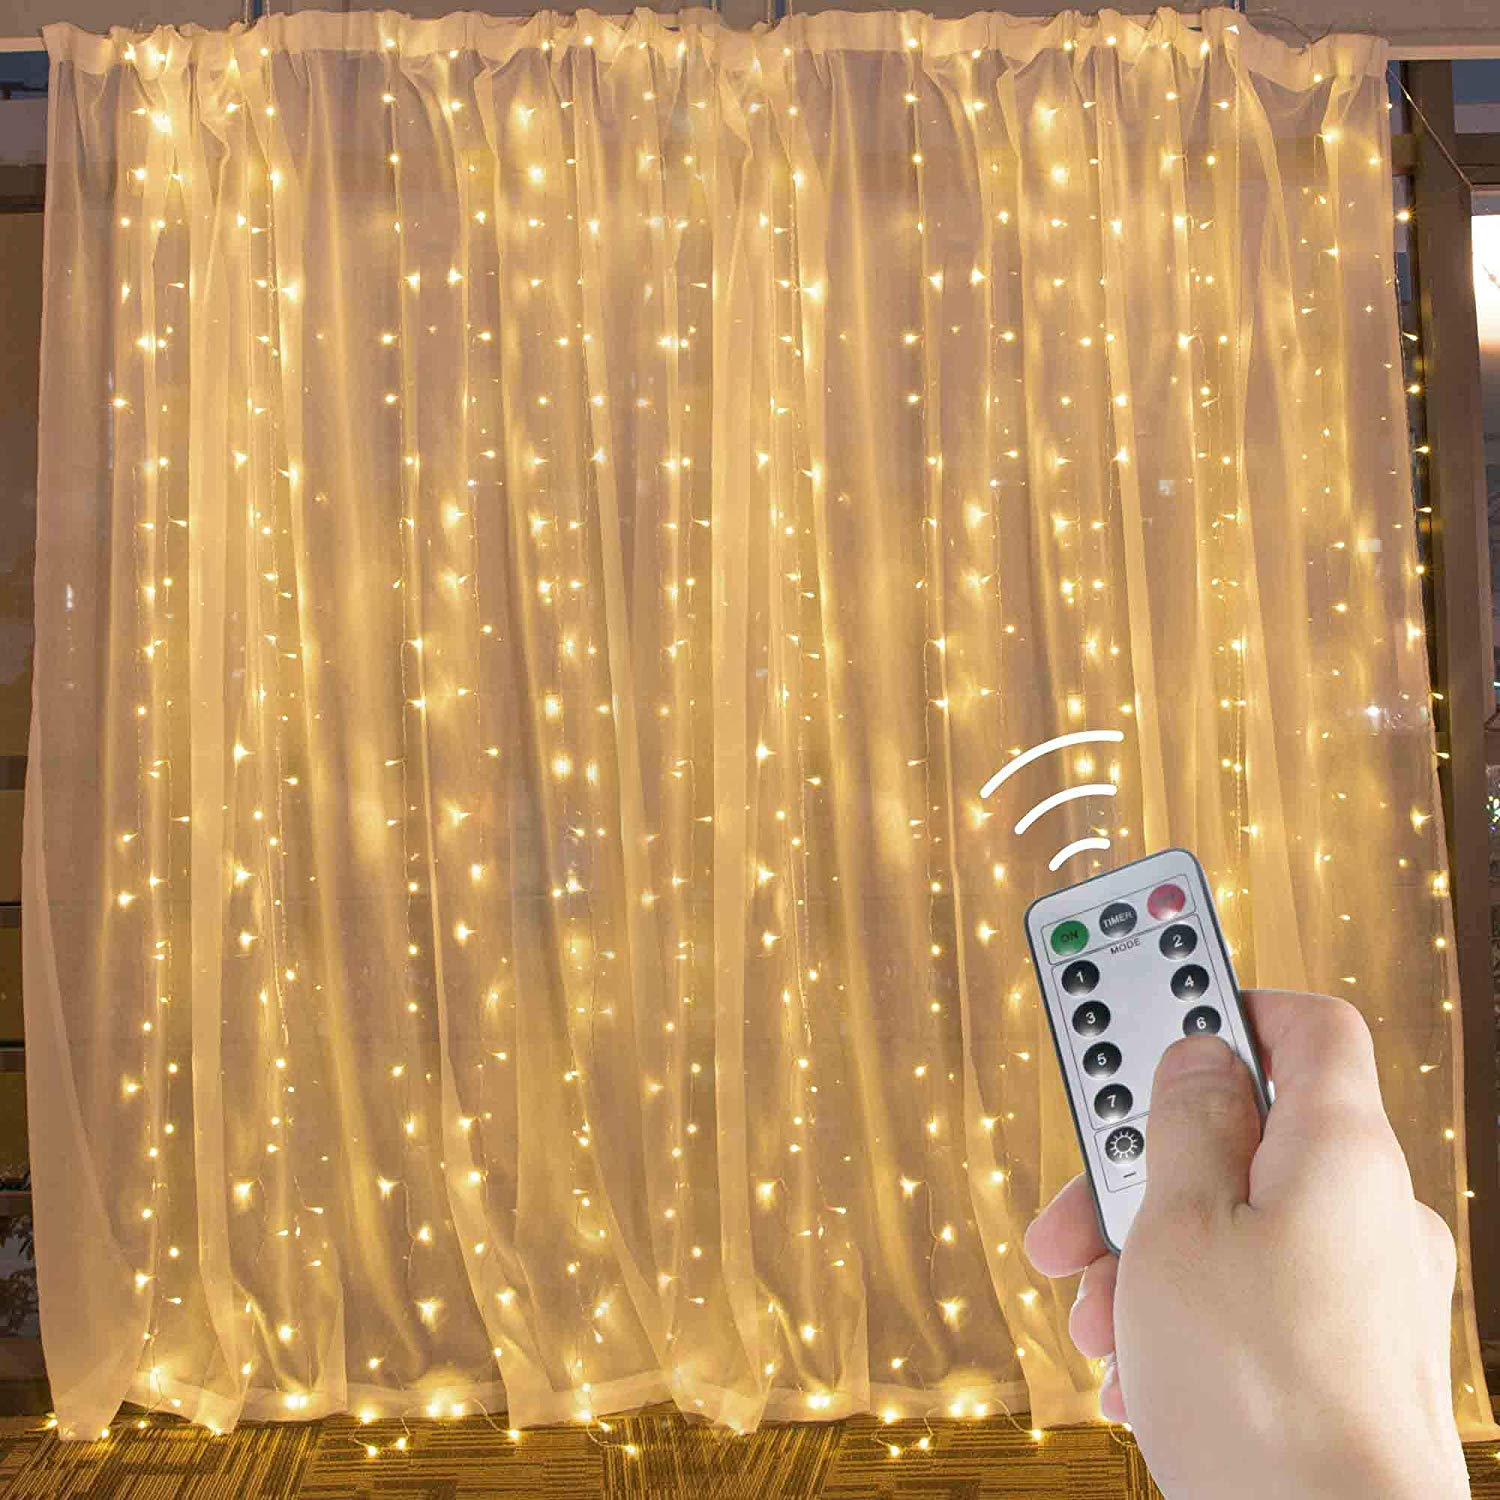 Warm White Brightown 10 Ft Window Curtain Icicle String Lights with Remote /& Timer 300 LED Fairy Twinkle Lights with 8 Modes Fits for Bedroom Wedding Party Backdrop Outdoor Indoor Wall Decoration